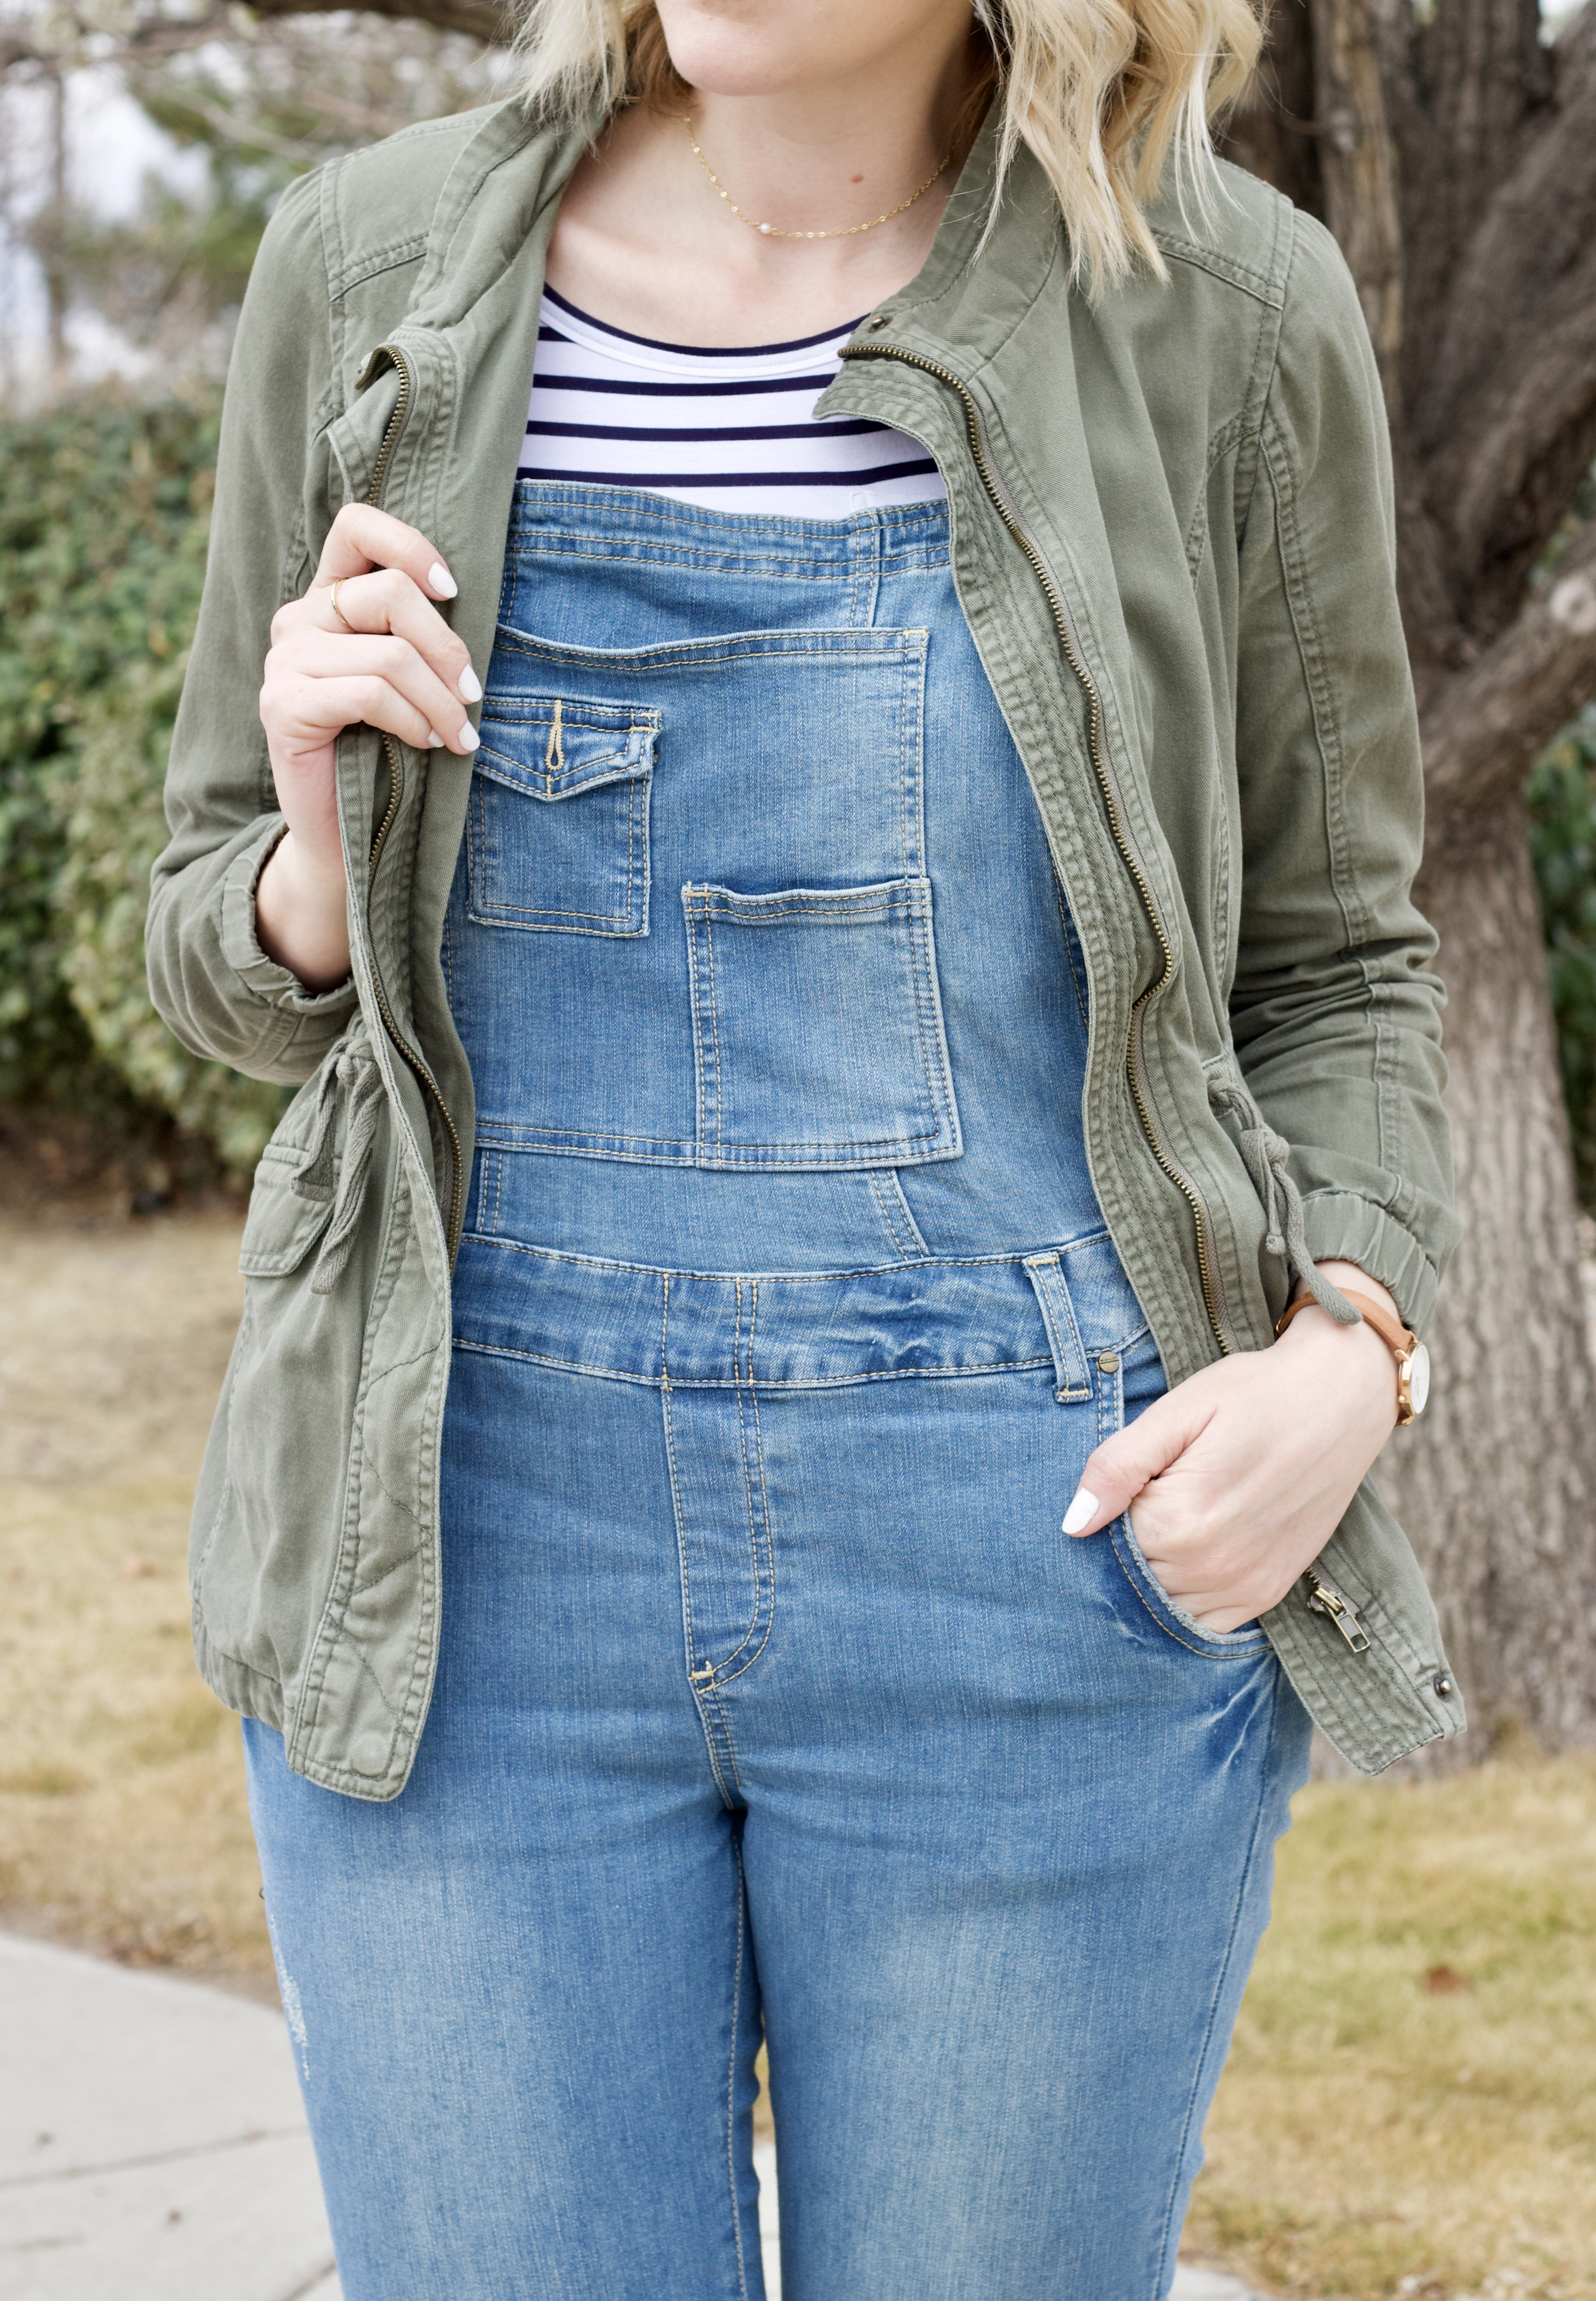 overalls outfit for spring #overalls #springstyle #springoutfit